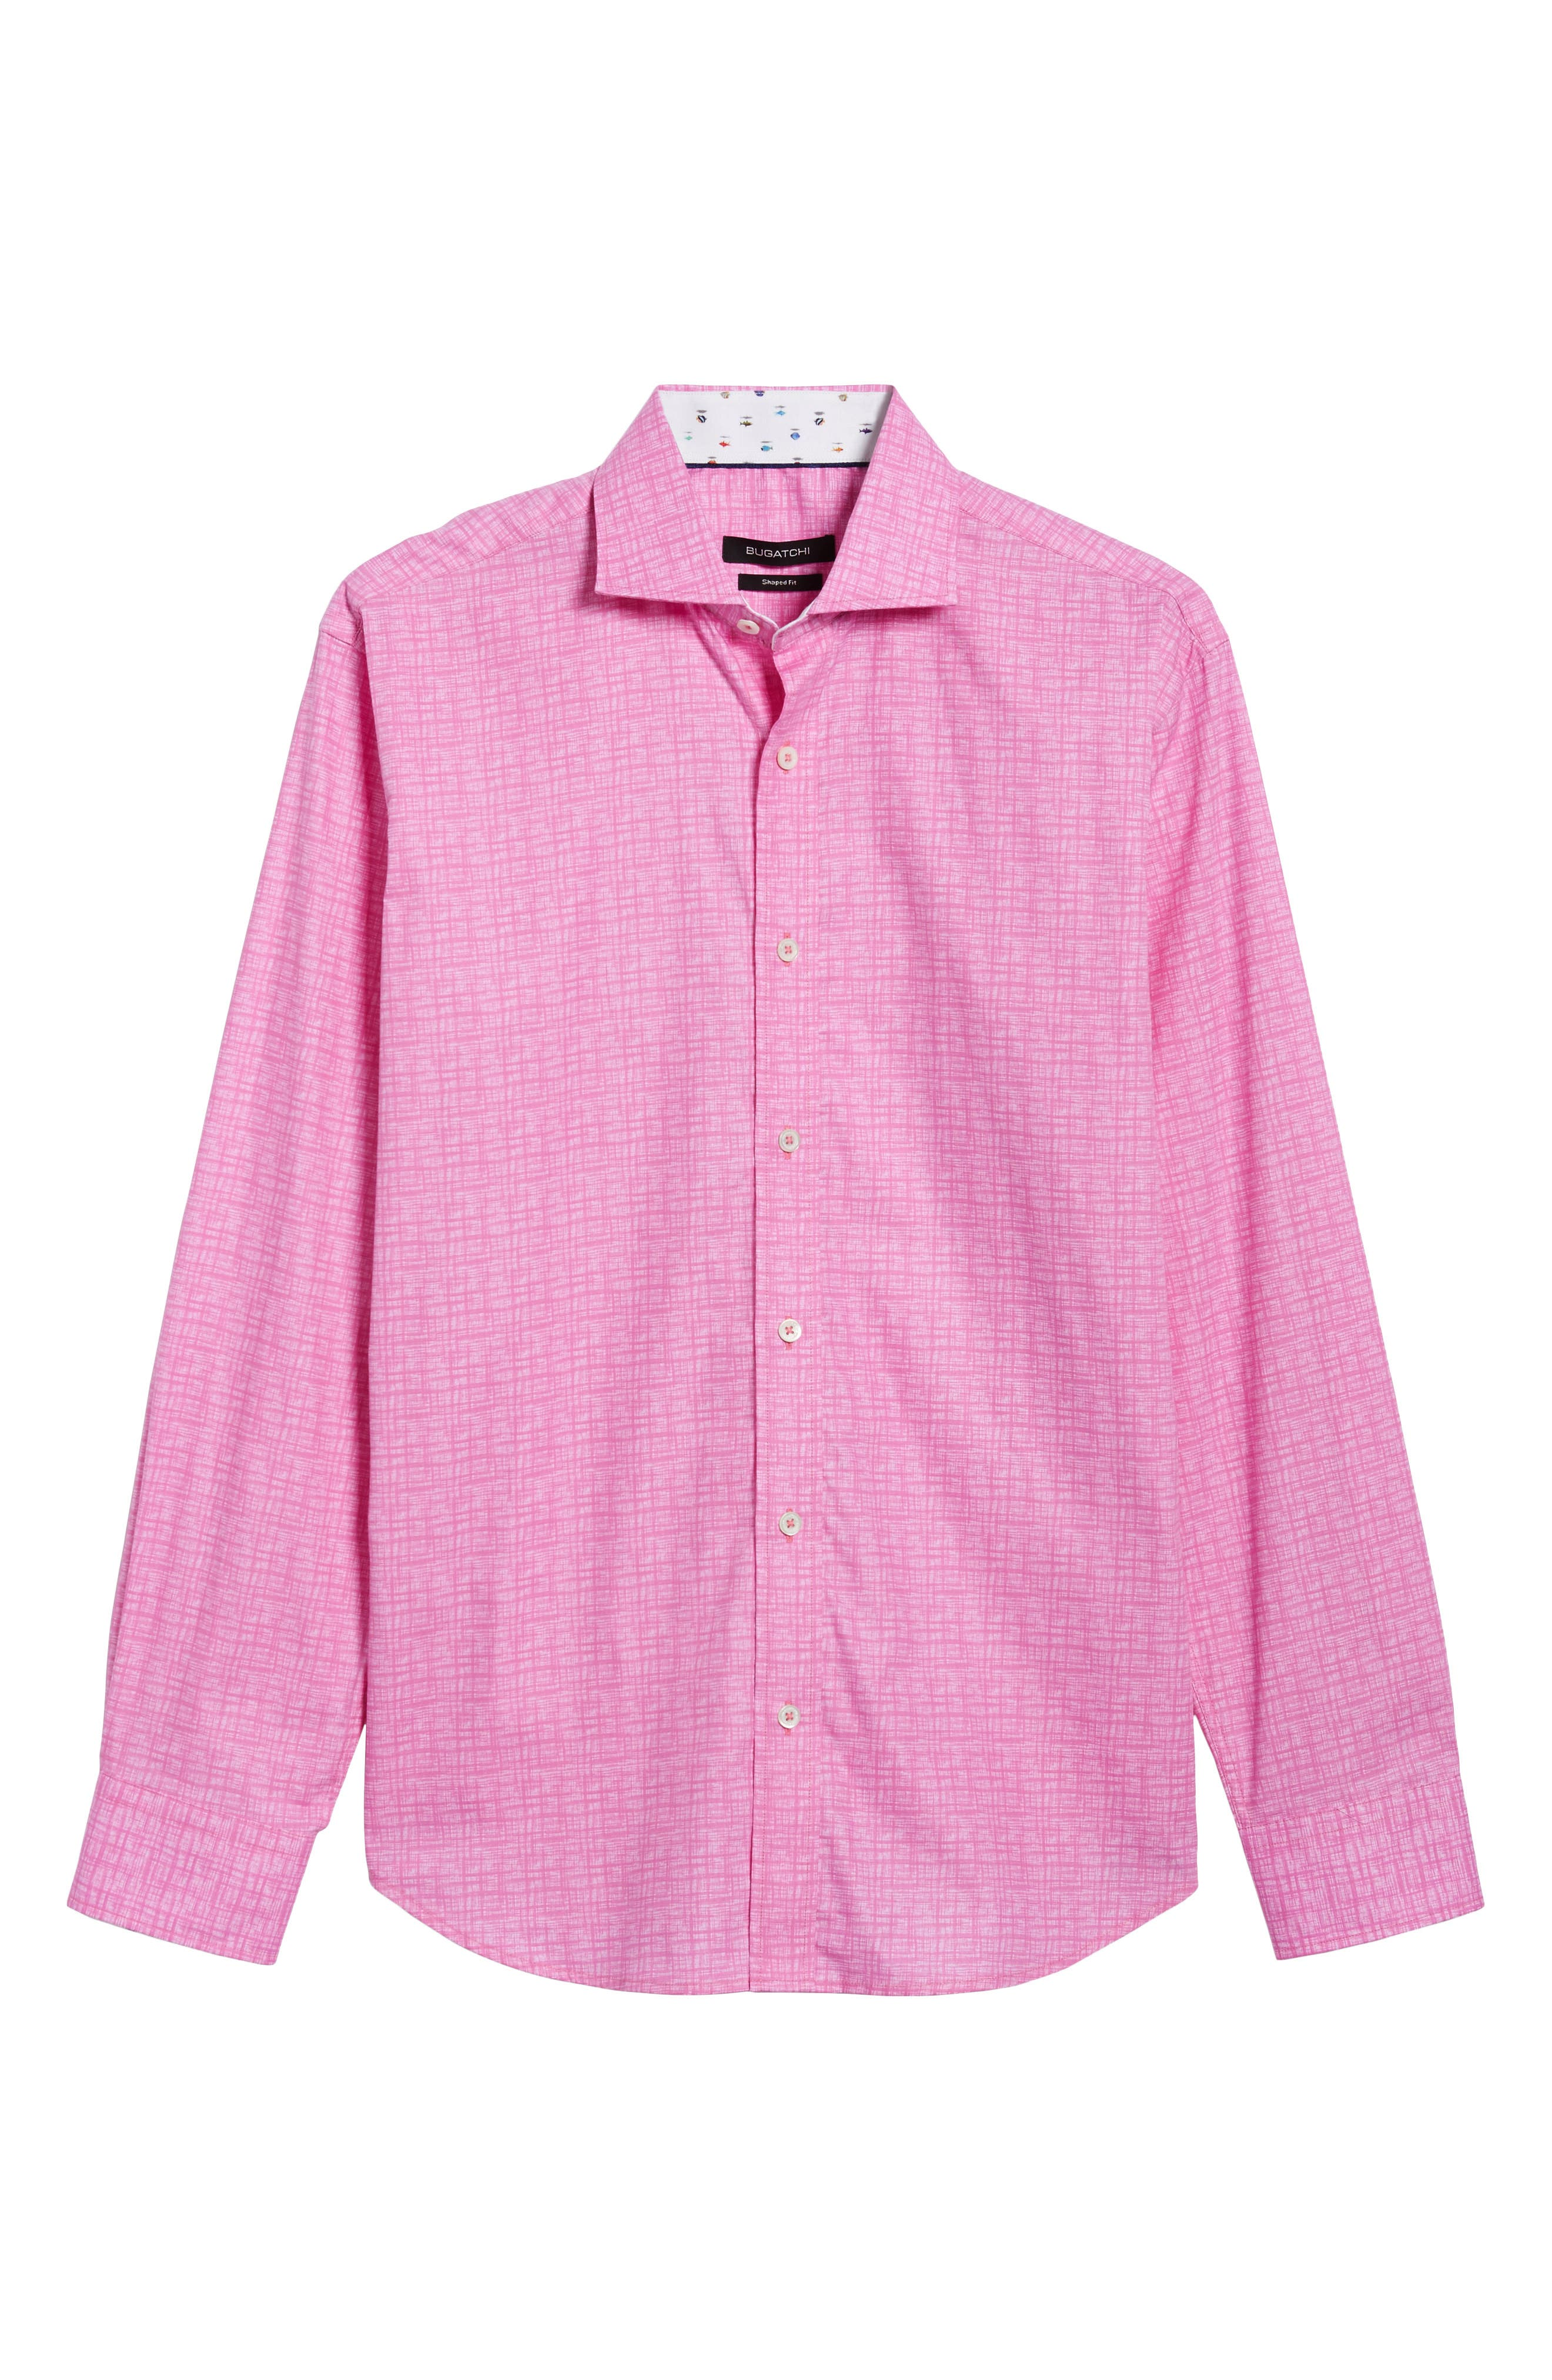 Freehand Shaped Fit Sport Shirt,                             Alternate thumbnail 11, color,                             Pink